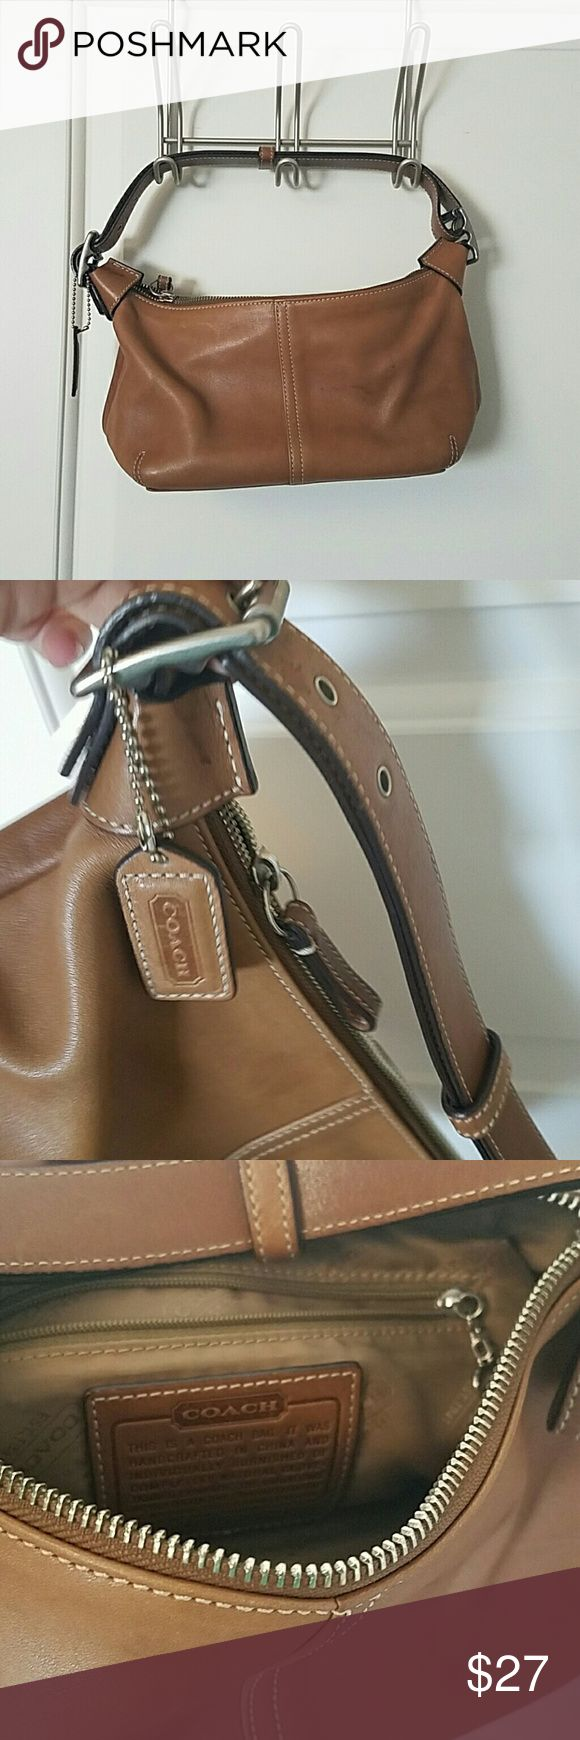 Coach hobo shoulder bag Brown Coach shoulder bag in good used condition.  A few minor scuffs as shown in photos. Coach Bags Hobos